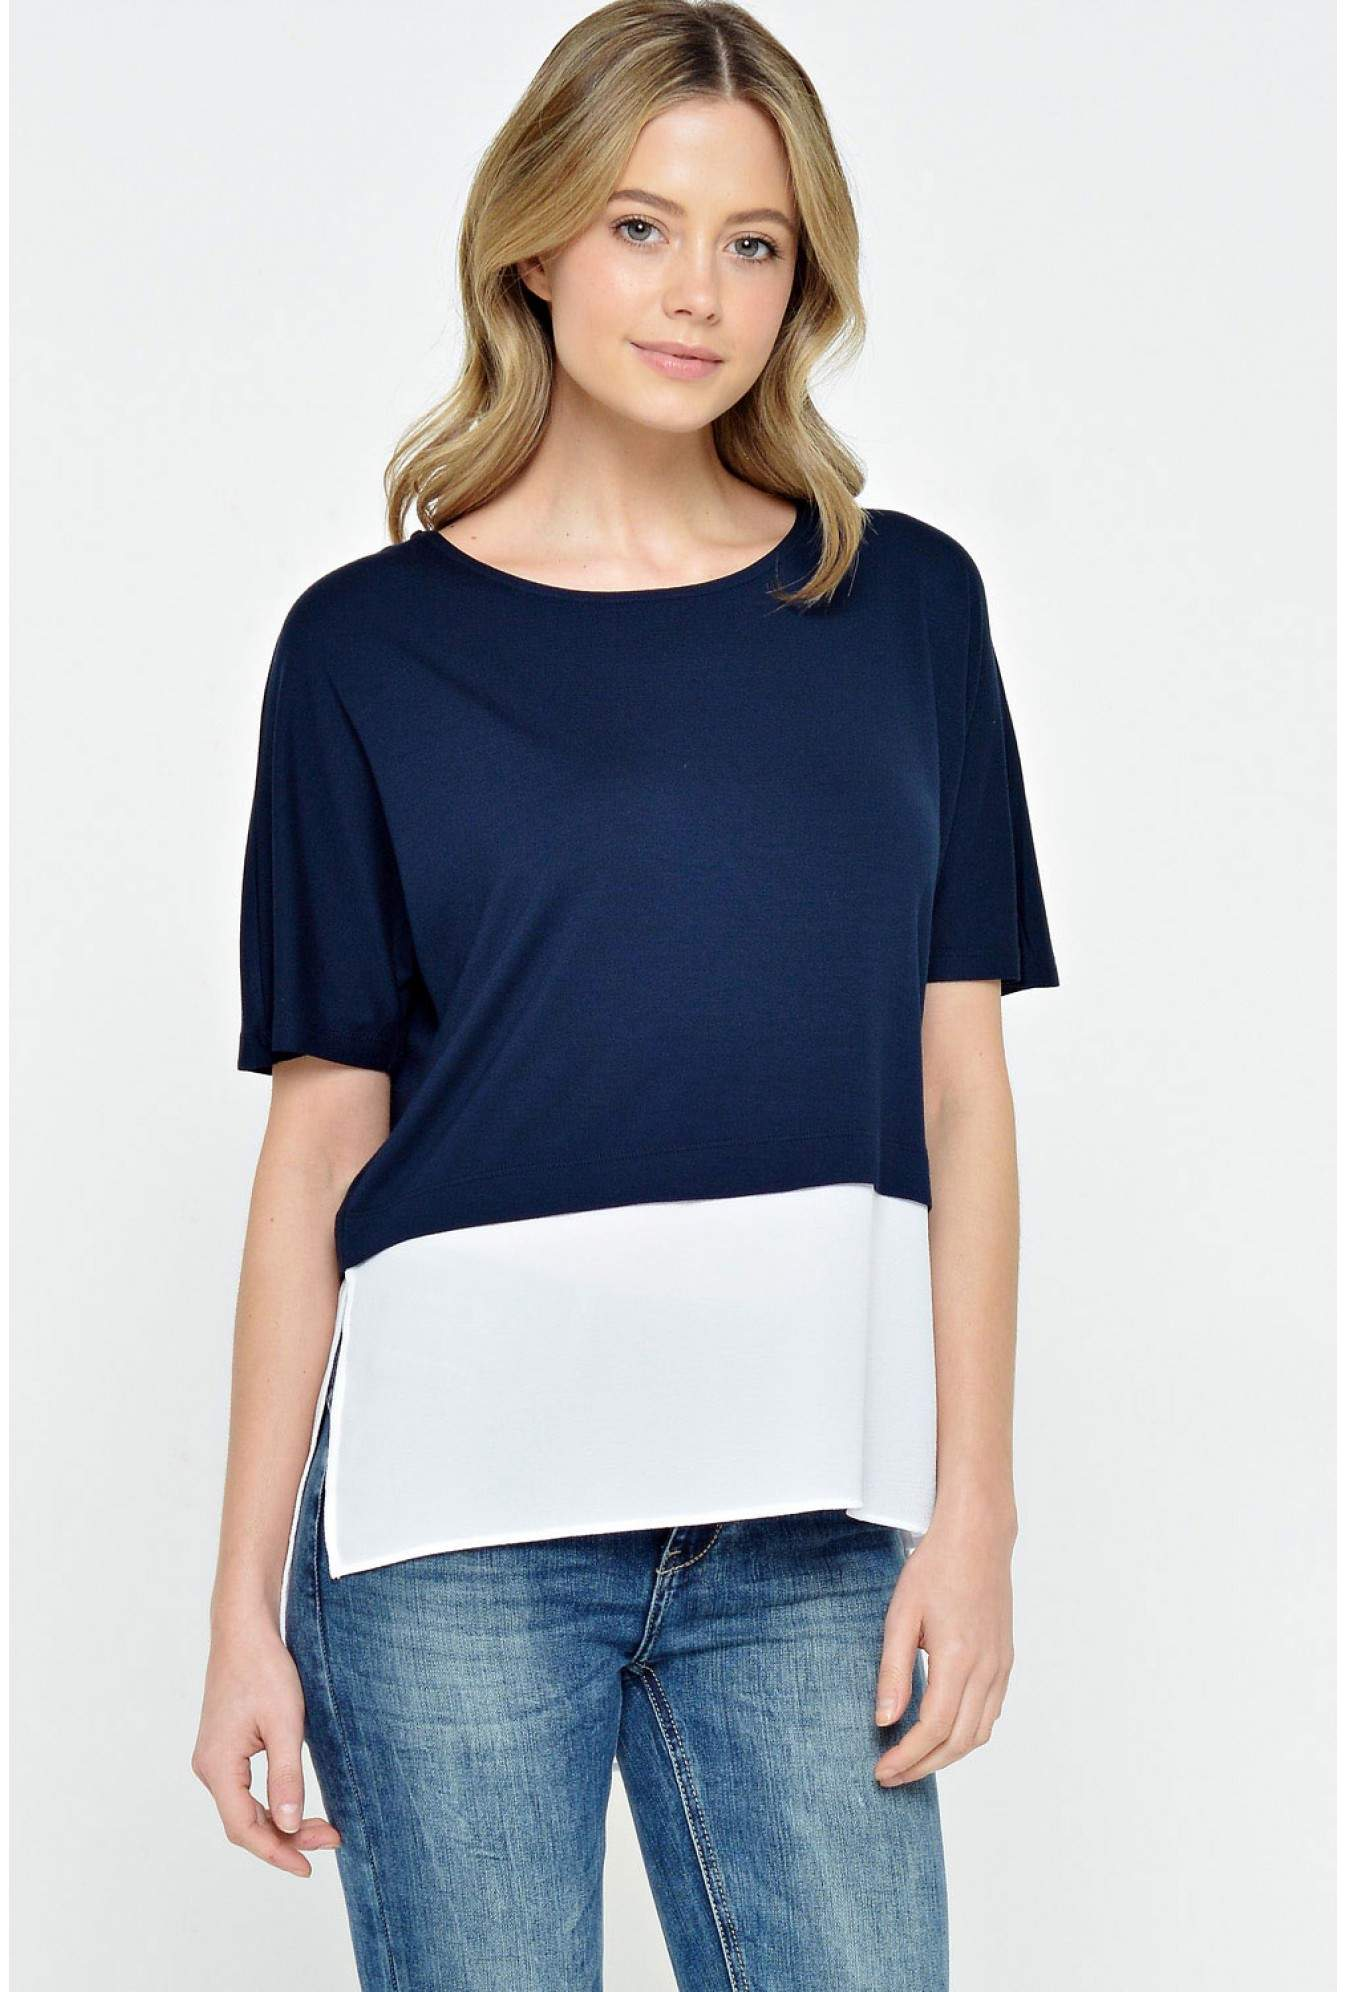 7af887f427b2 Noisy May Molly S/S Top in Navy | iCLOTHING